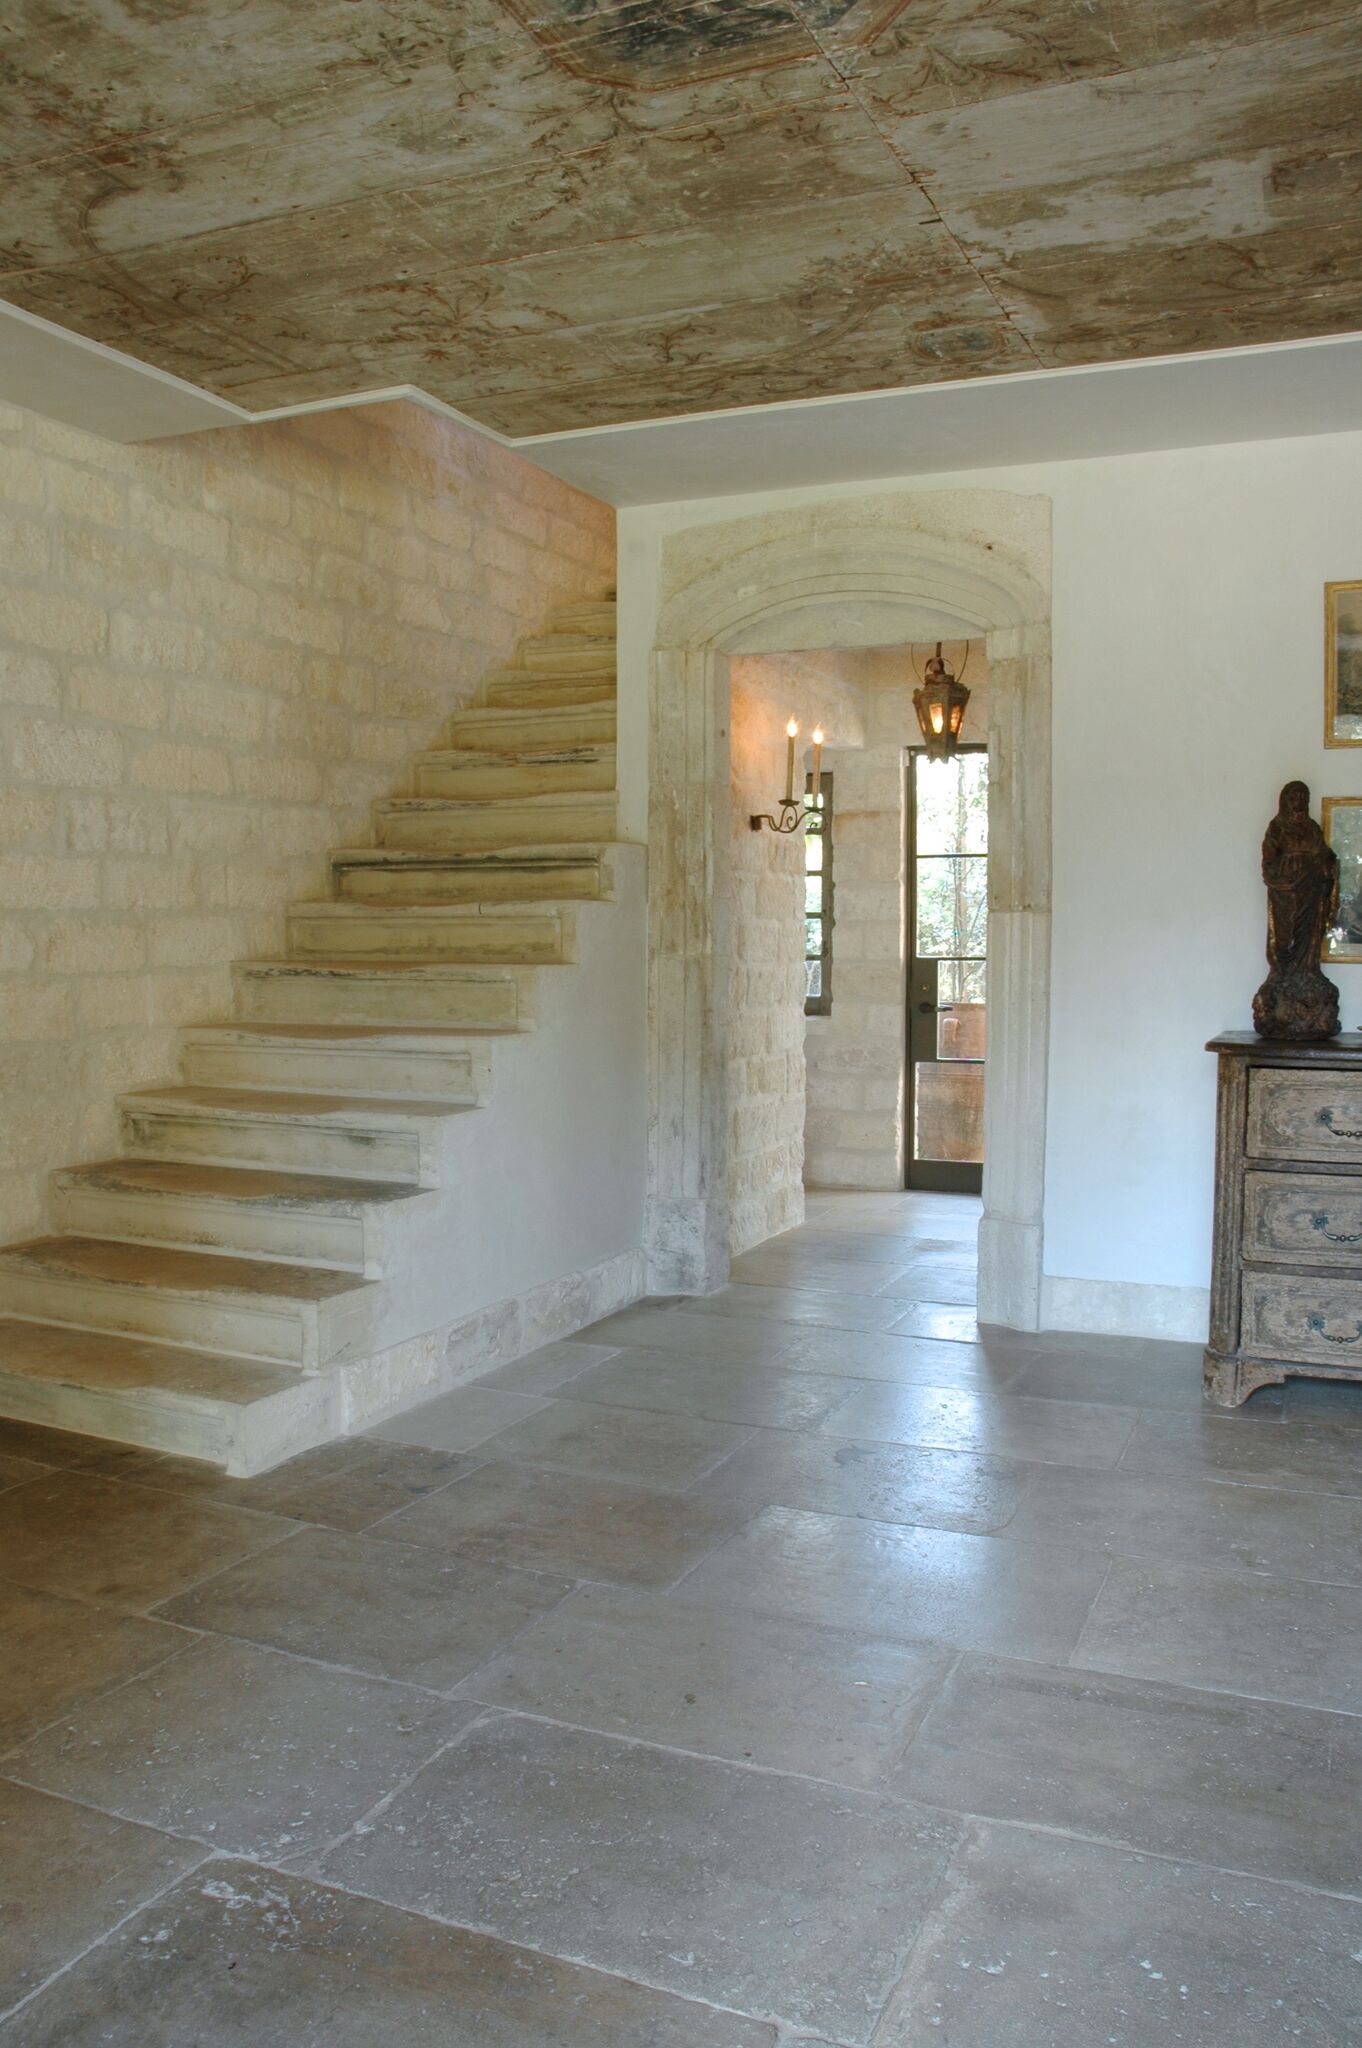 Chateau Domingue Timeless European Elegance and French farmhouse style converge in this house tour of founder Ruth Gay's home on Hello Lovely. Reclaimed stone, antique doors and mantels, and one of a kind architectural elements. #housetour #frenchcountry #frenchfarmhouse #europeanfarmhouse #chateaudomingue #rusticdecor #pamelapierce #elegantdecor #limestone #stairs #reclaimedstone